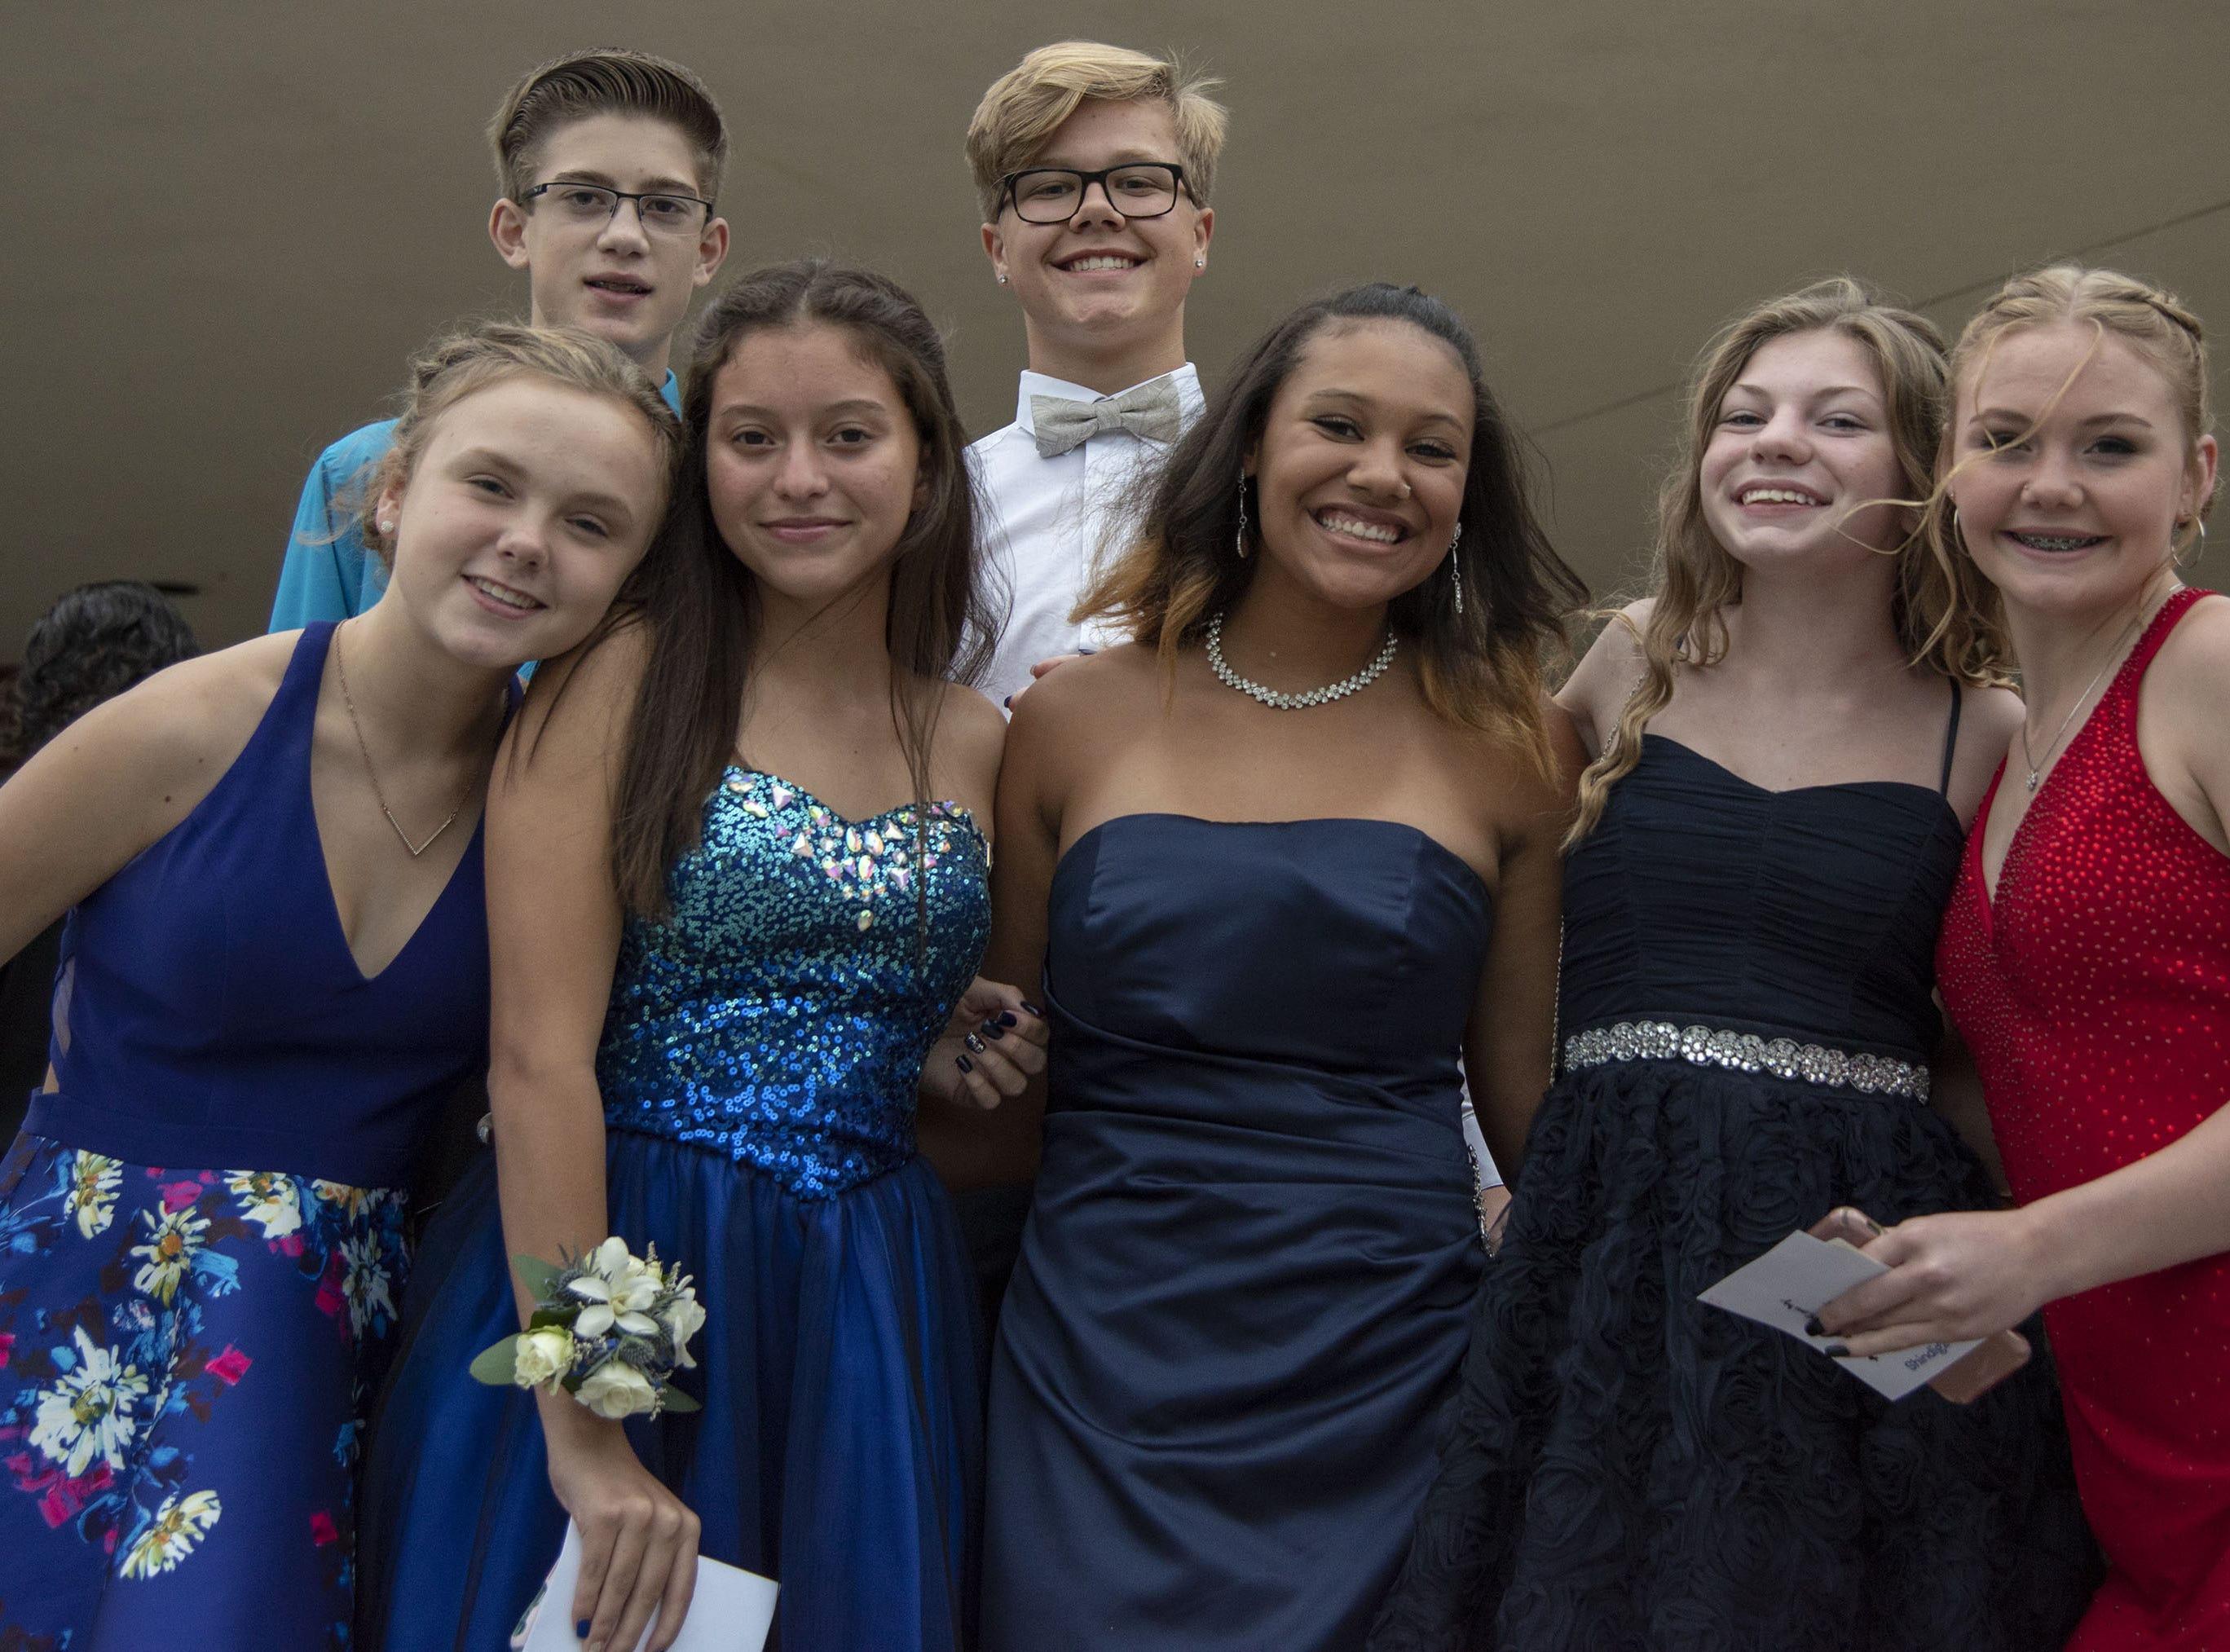 Students pose for a picture at the 2018 Dallastown Area High School homecoming dance on Saturday, October 06, 2018.